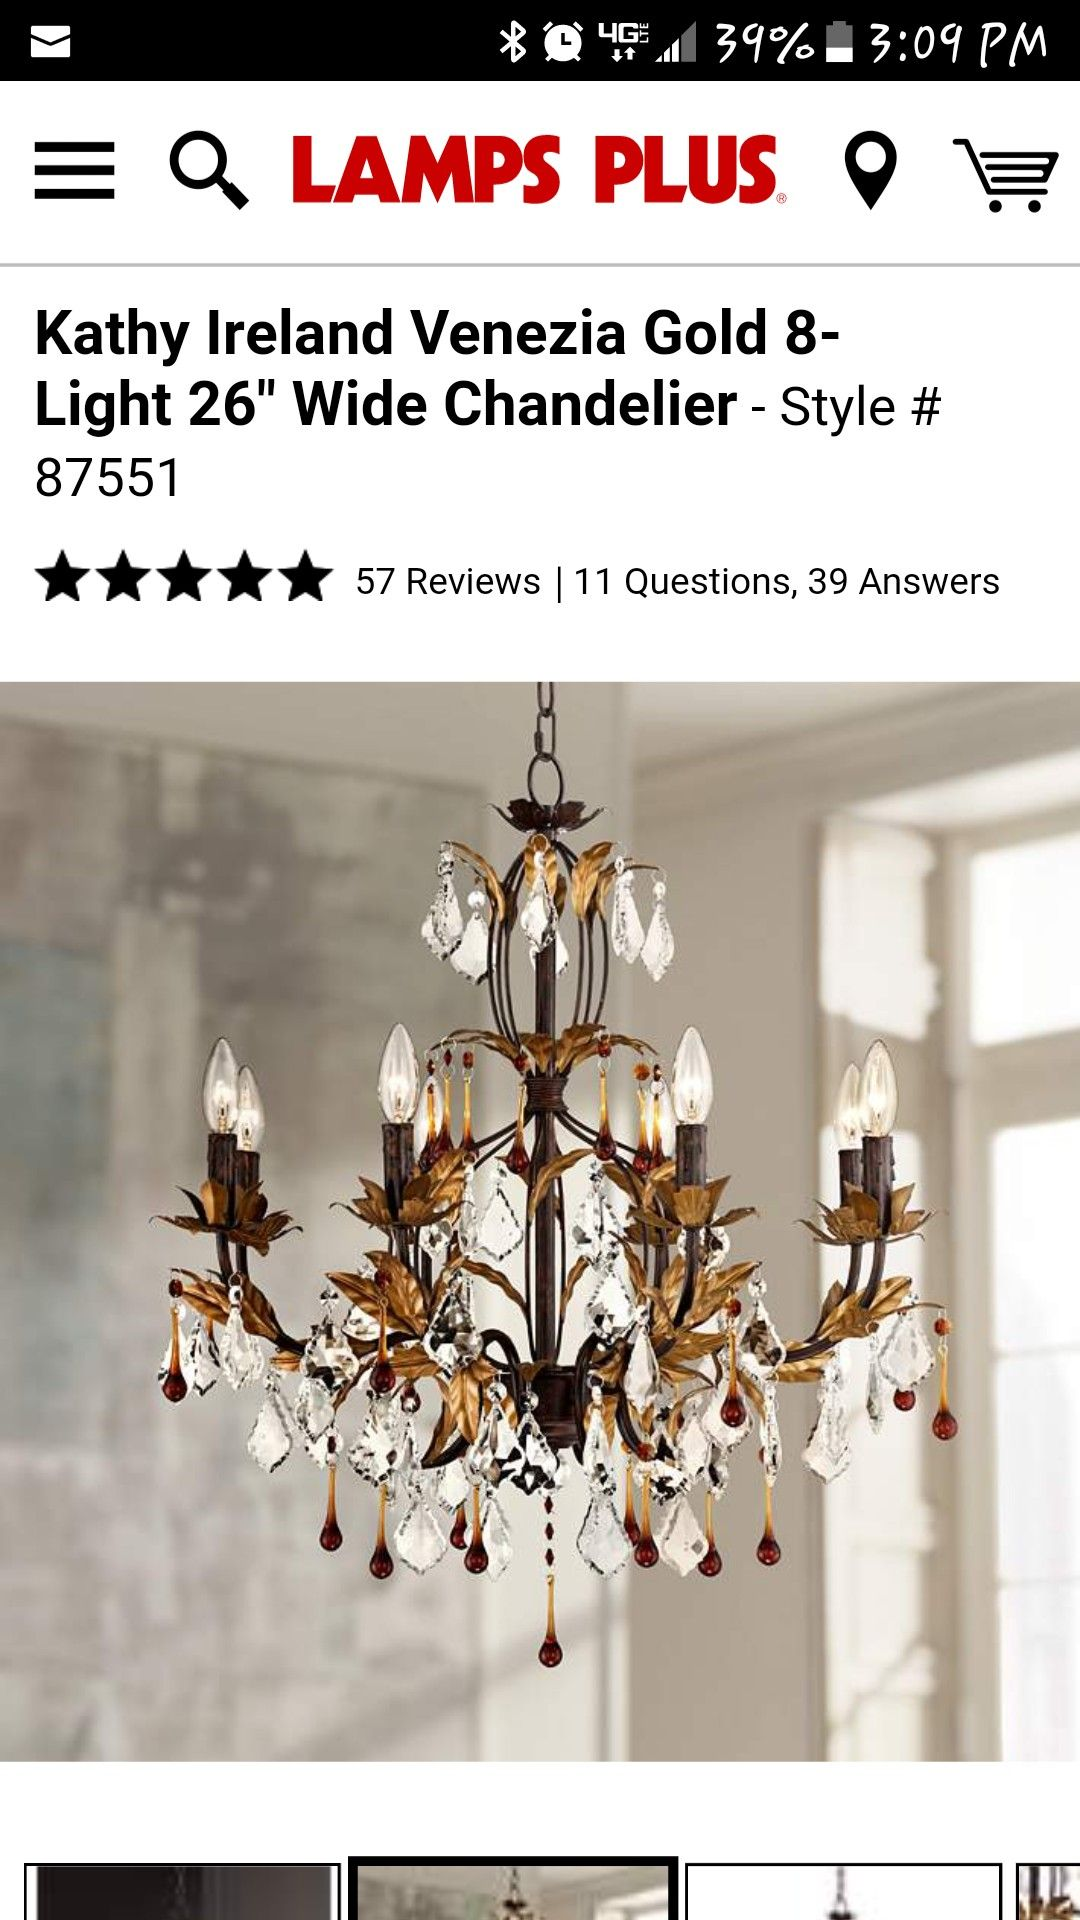 Pin by Evelyn Vazquez on Home Decor. Chandelier style